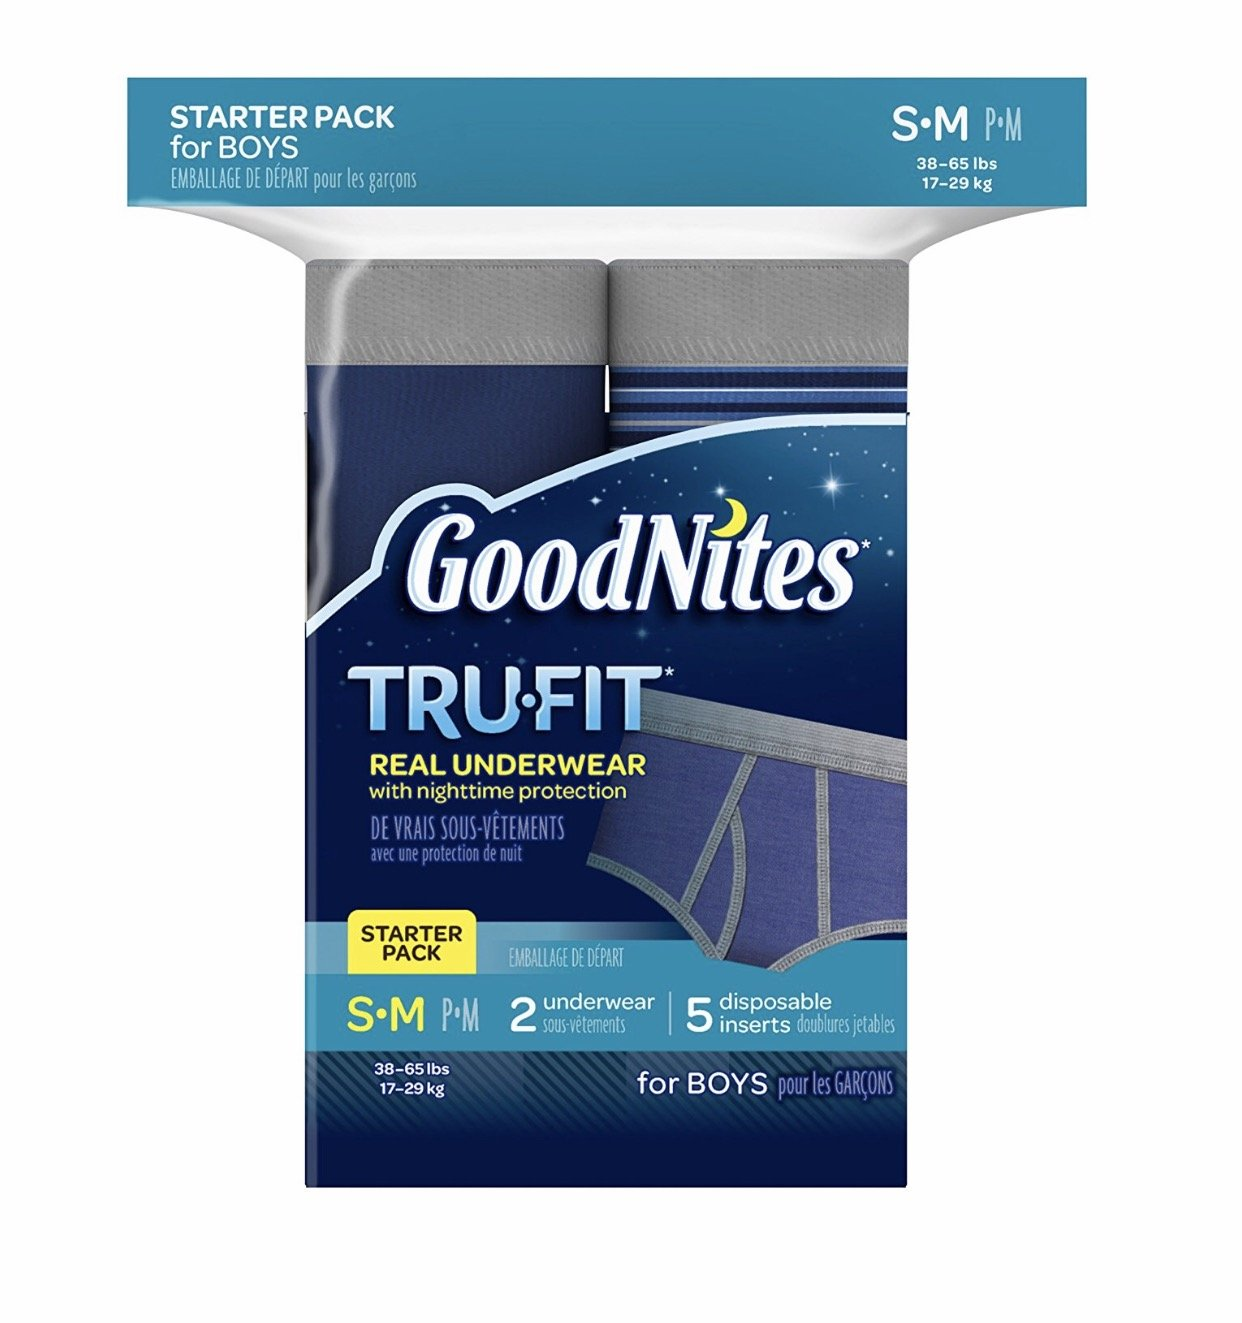 (Pack of 4) GoodNites Tru-Fit Real Underwear with Nighttime Protection Starter Pack for Boys, Small/Medium, 2 Underwear and 5 Disposable Inserts